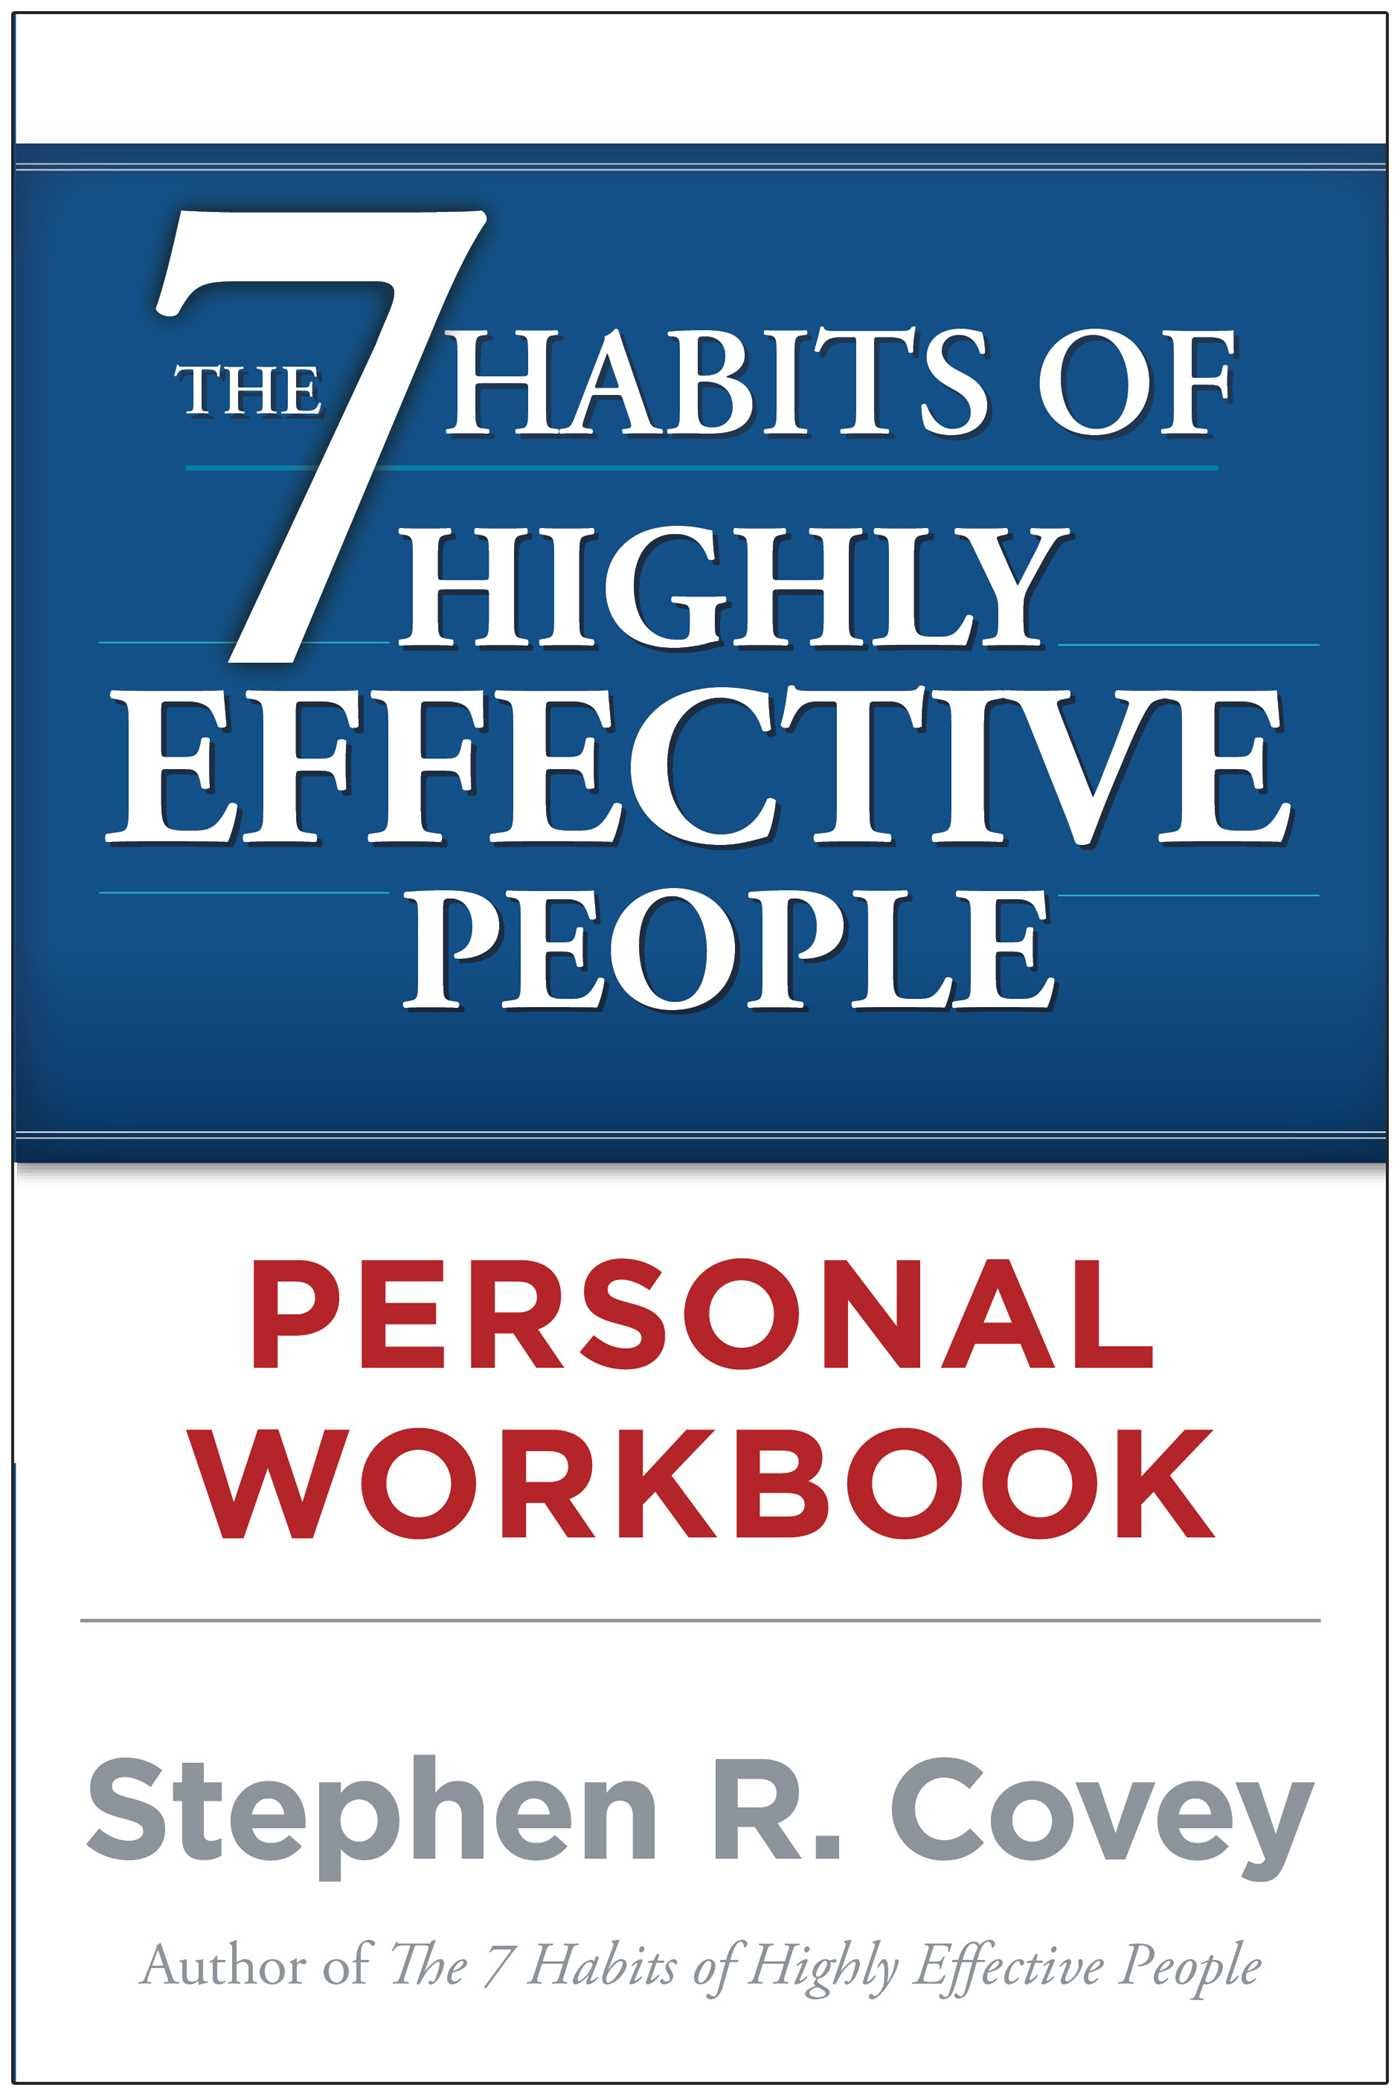 Image for The 7 Habits of Highly Effective People Personal Workbook